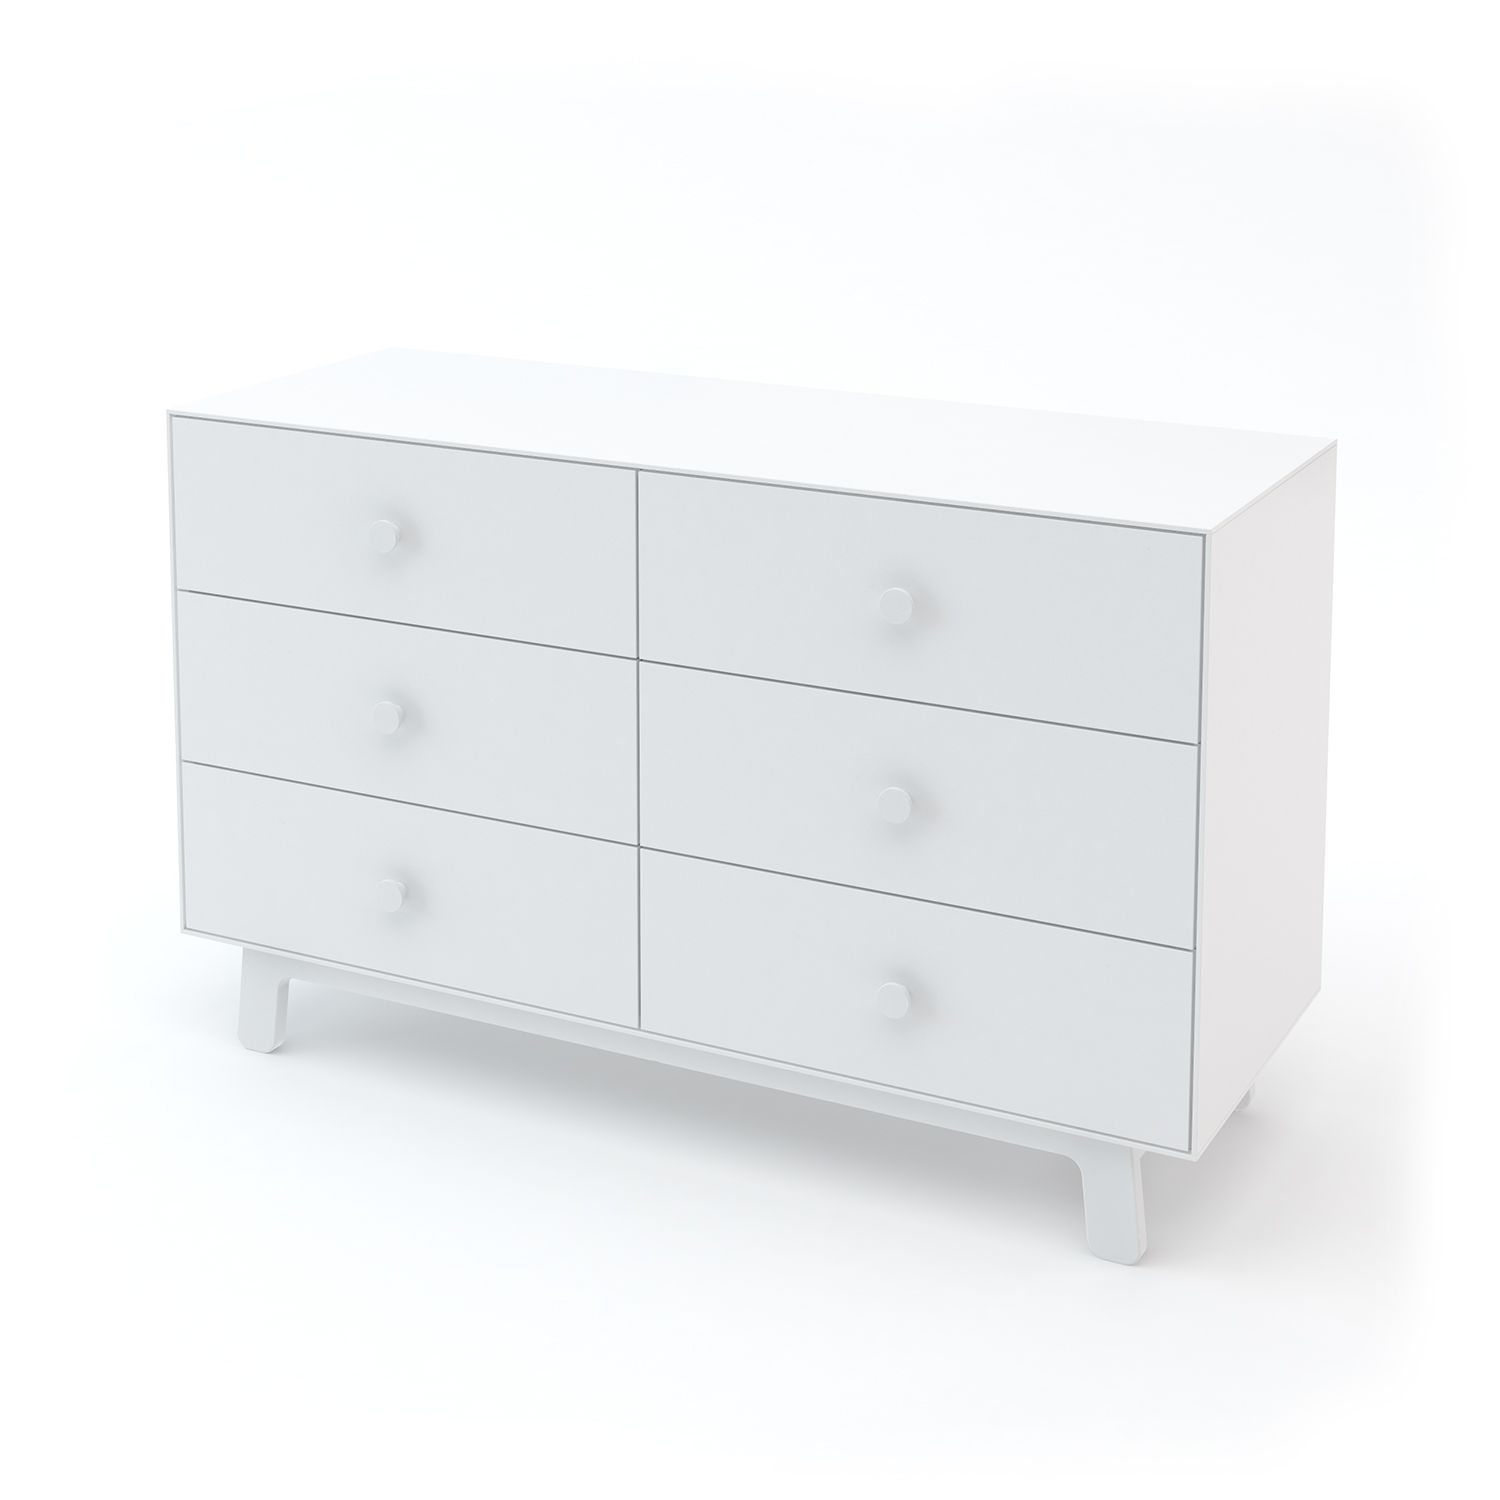 "Oeuf NYC - Commode Merlin 6 tiroirs ""Sparrow"" - Blanc"